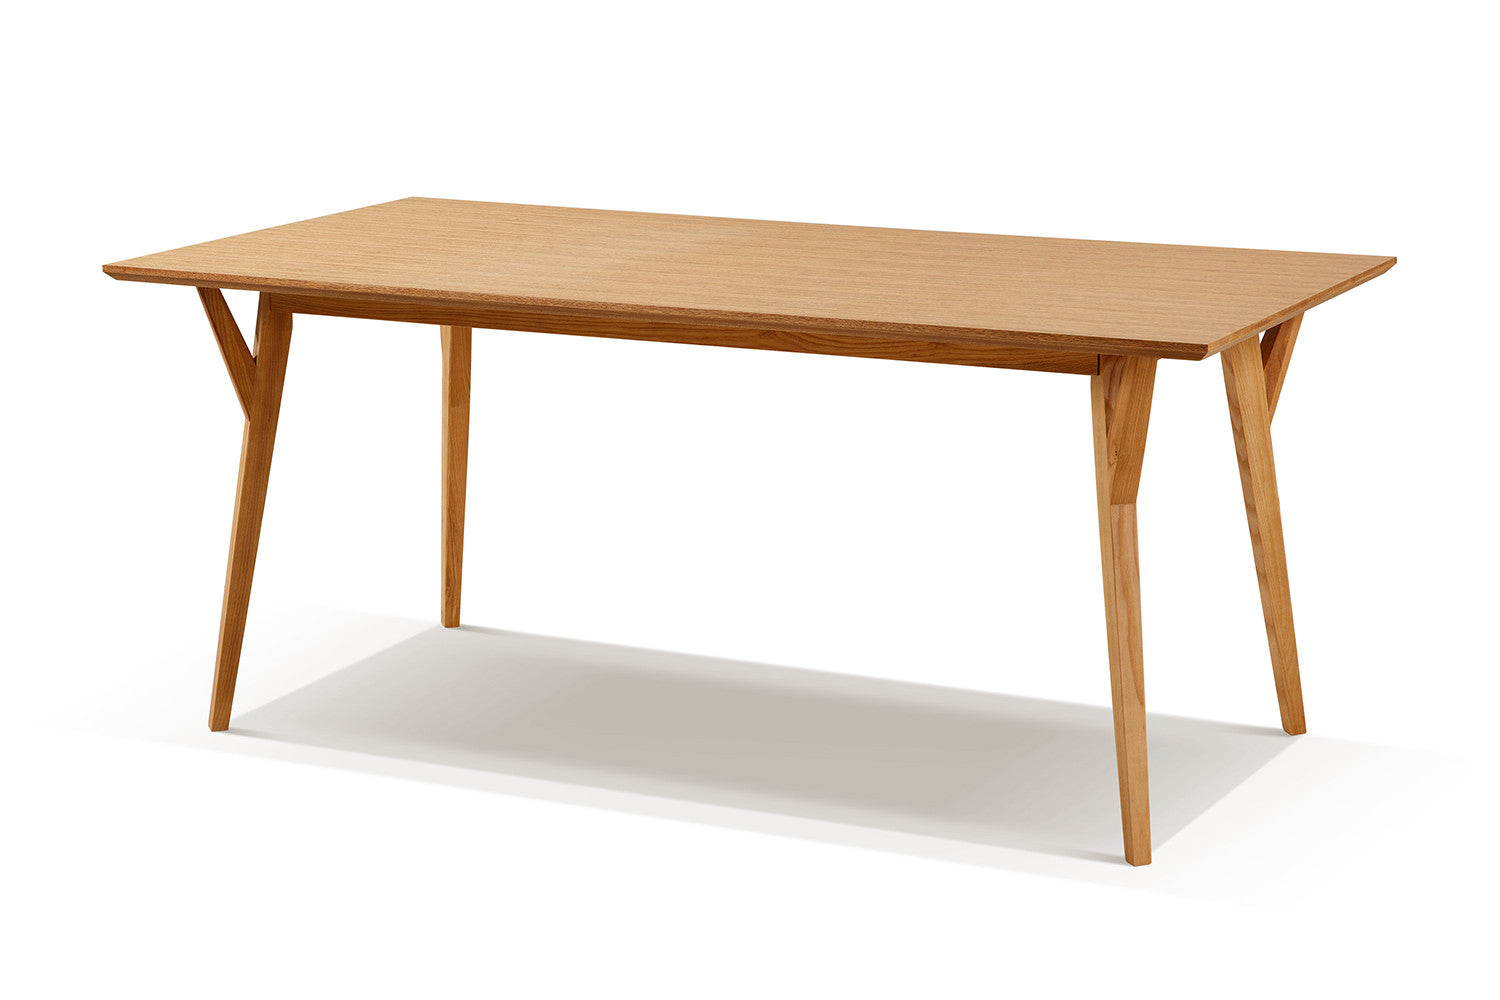 Table de salle manger scandinave en bois linth dewarens - Table bois scandinave ...